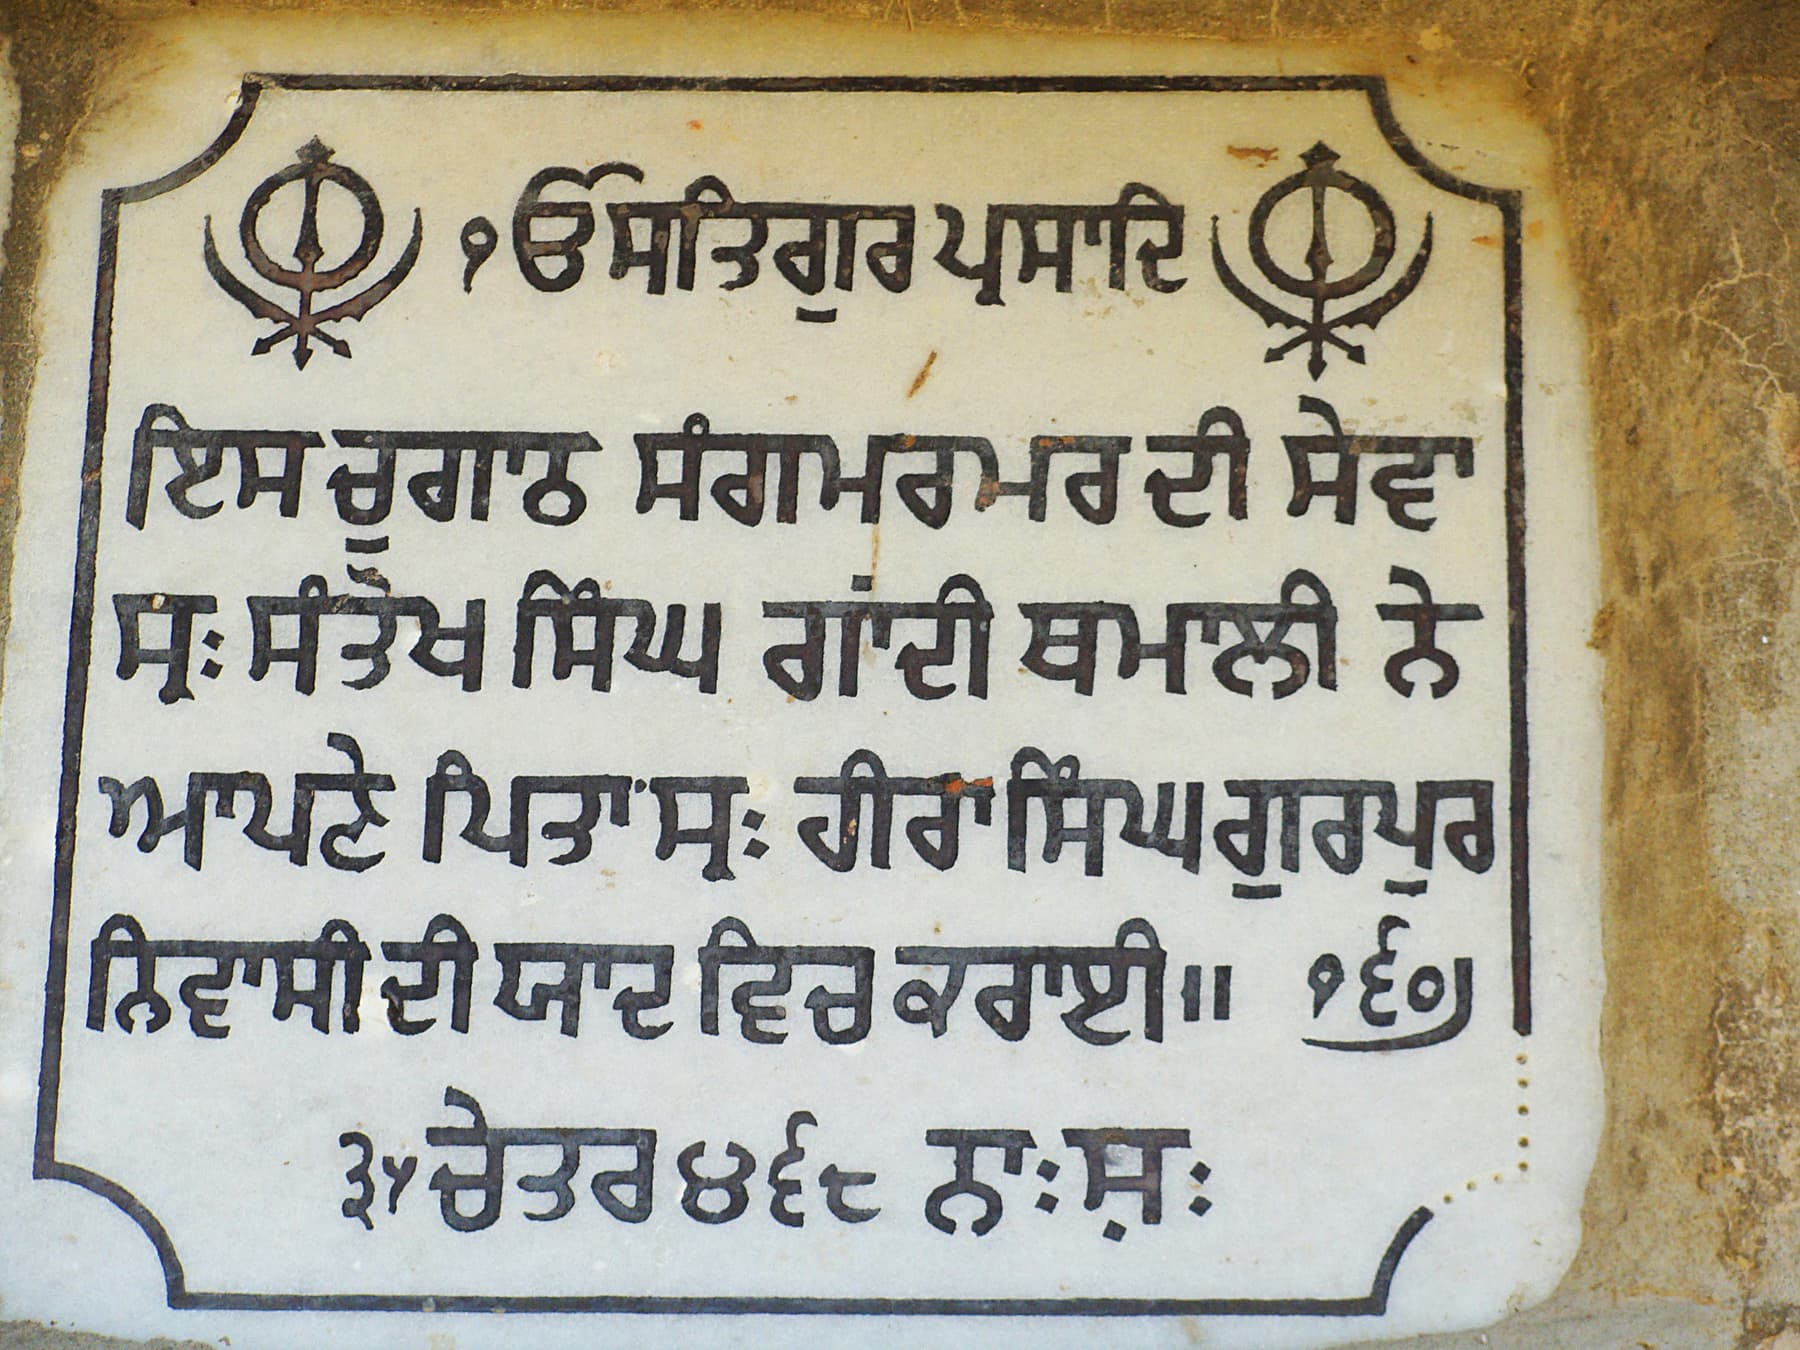 Gurmukhi inscriptions on the northern wall.